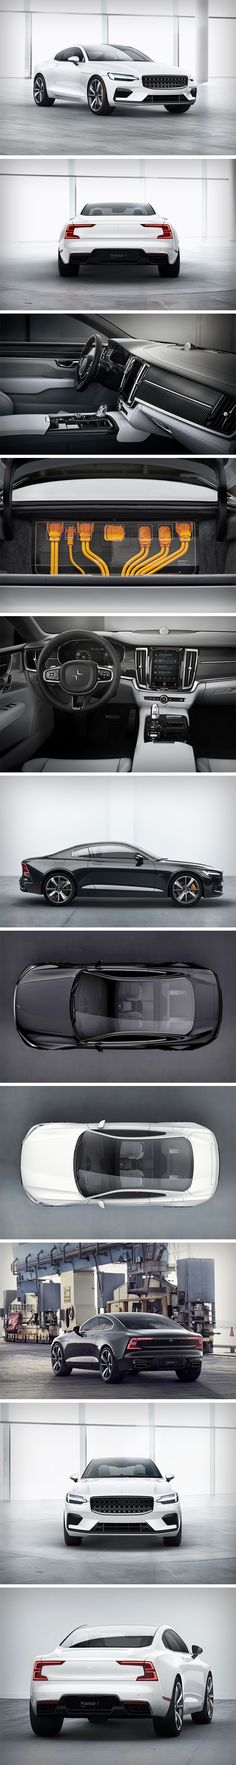 Nothing has gotten us more excited than the release of the utterly gorgeous Polestar 1 by Volvo. After pledging to introduce solely electric-infused cars from 2019, Polestar 1 looks set to be the face of this new move forward for the company. Polestar 1 boasts 600 horsepower with its hybrid engine – while in the rear, Polestar 1 adds a 218 horsepower dual-electrical motor.